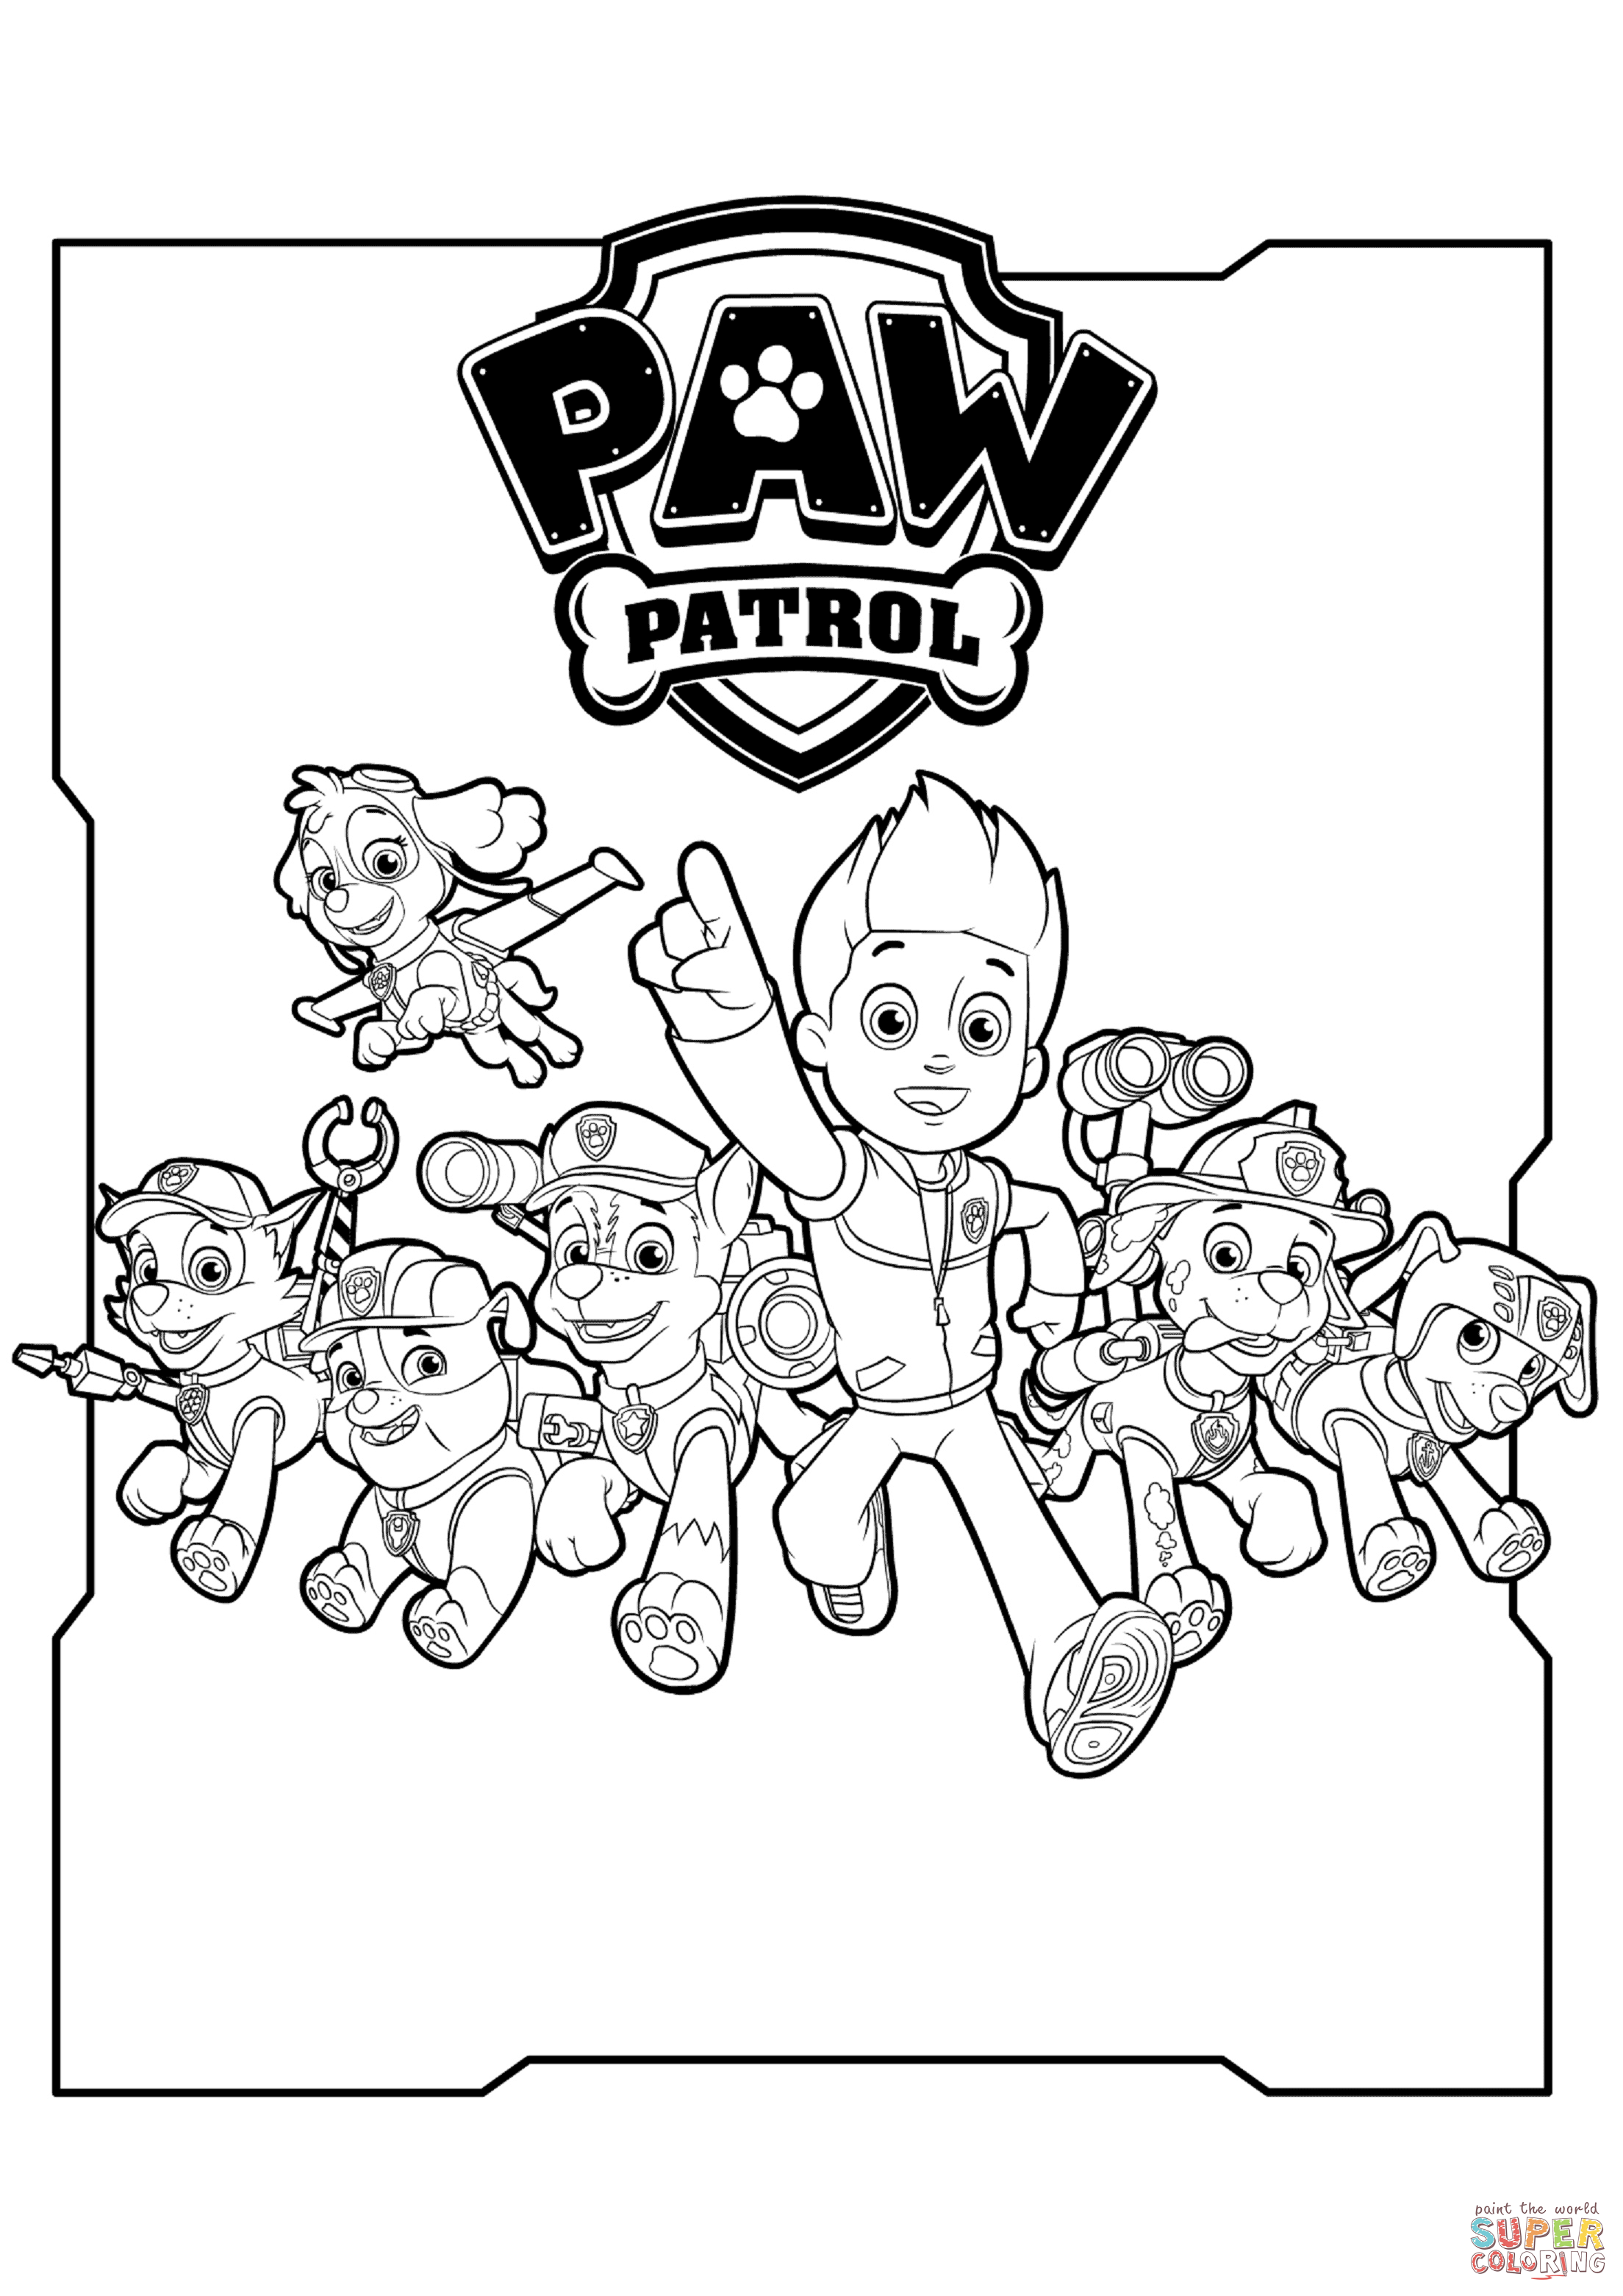 Printable Paw Patrol Coloring Pages - Coloring Home